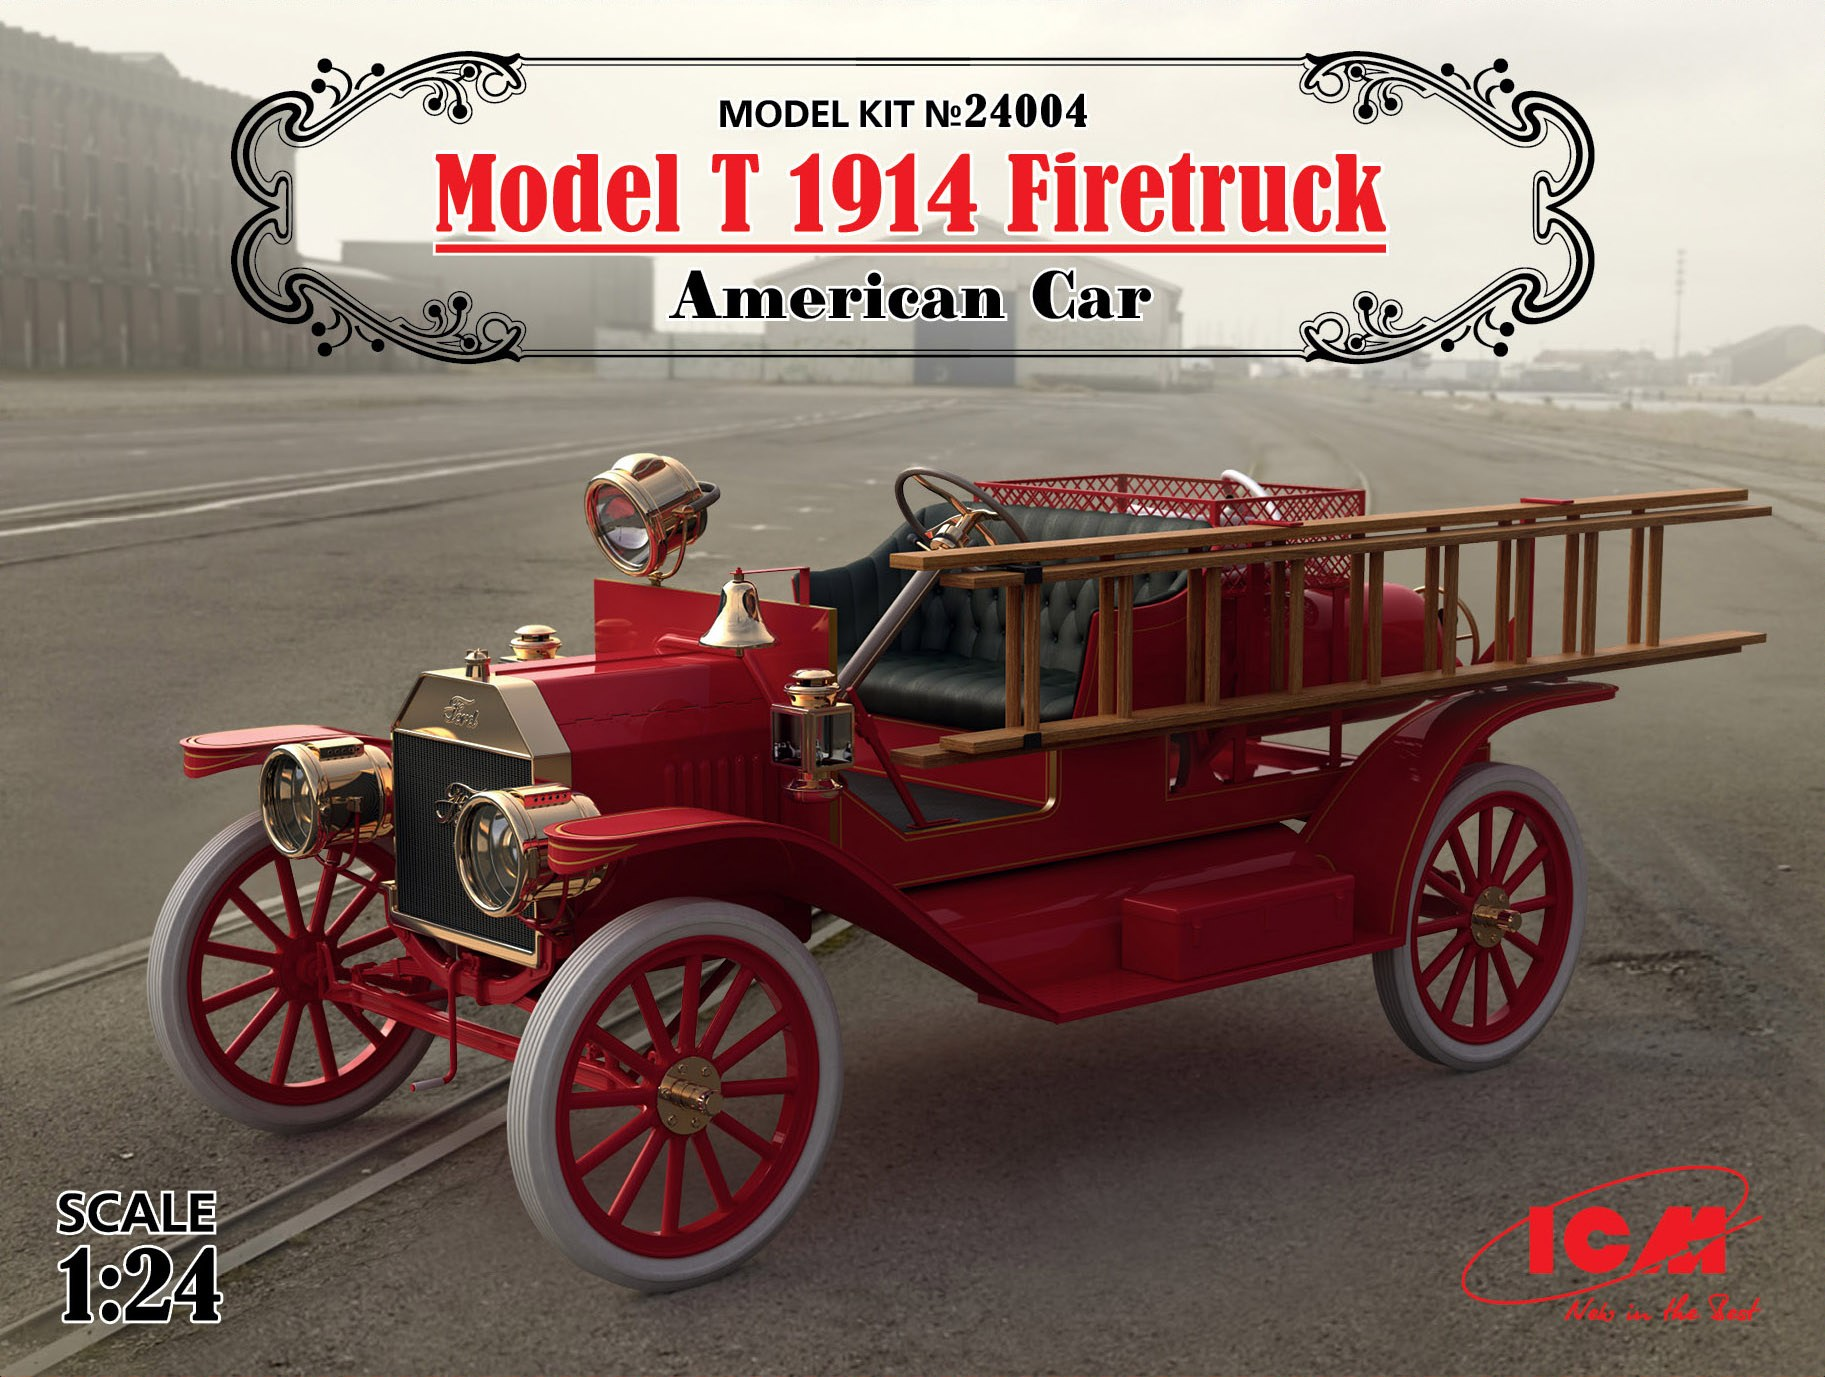 Kits 1:24, Cars, WWI, WWII, Figures